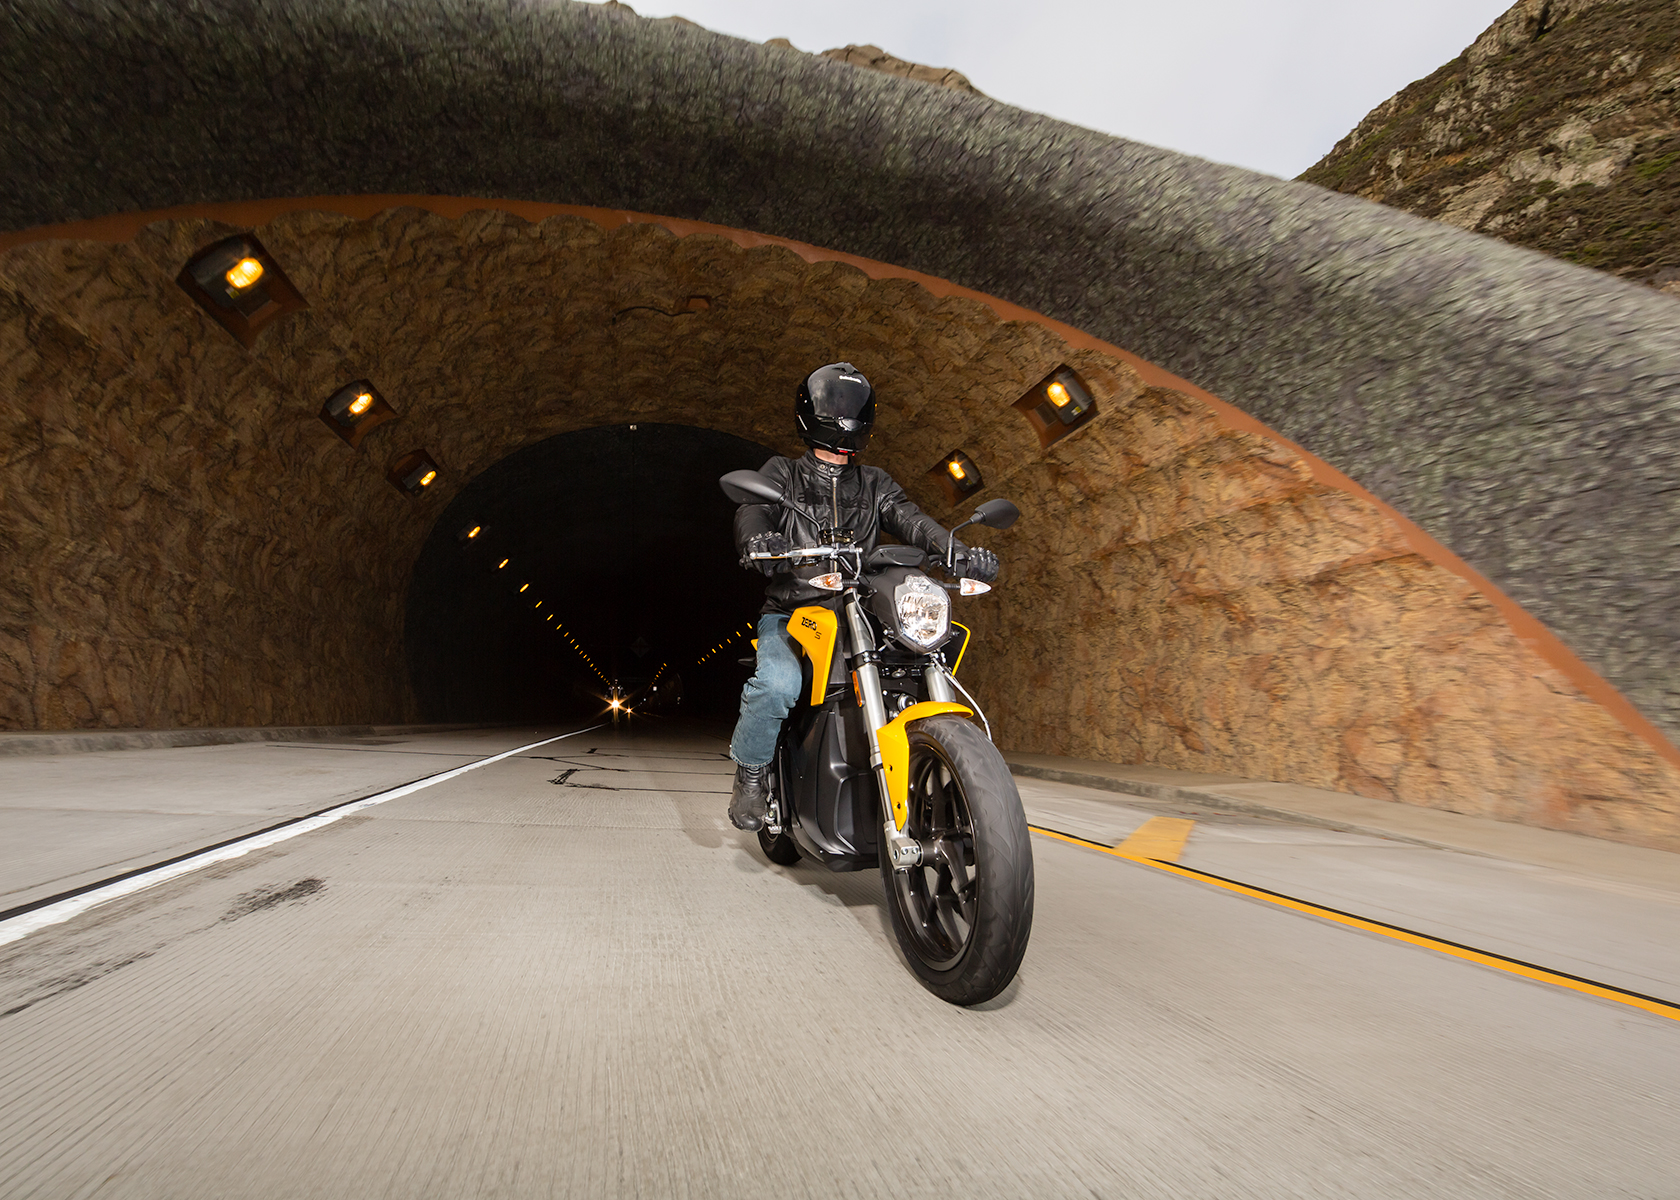 2015 Zero S Electric Motorcycle: